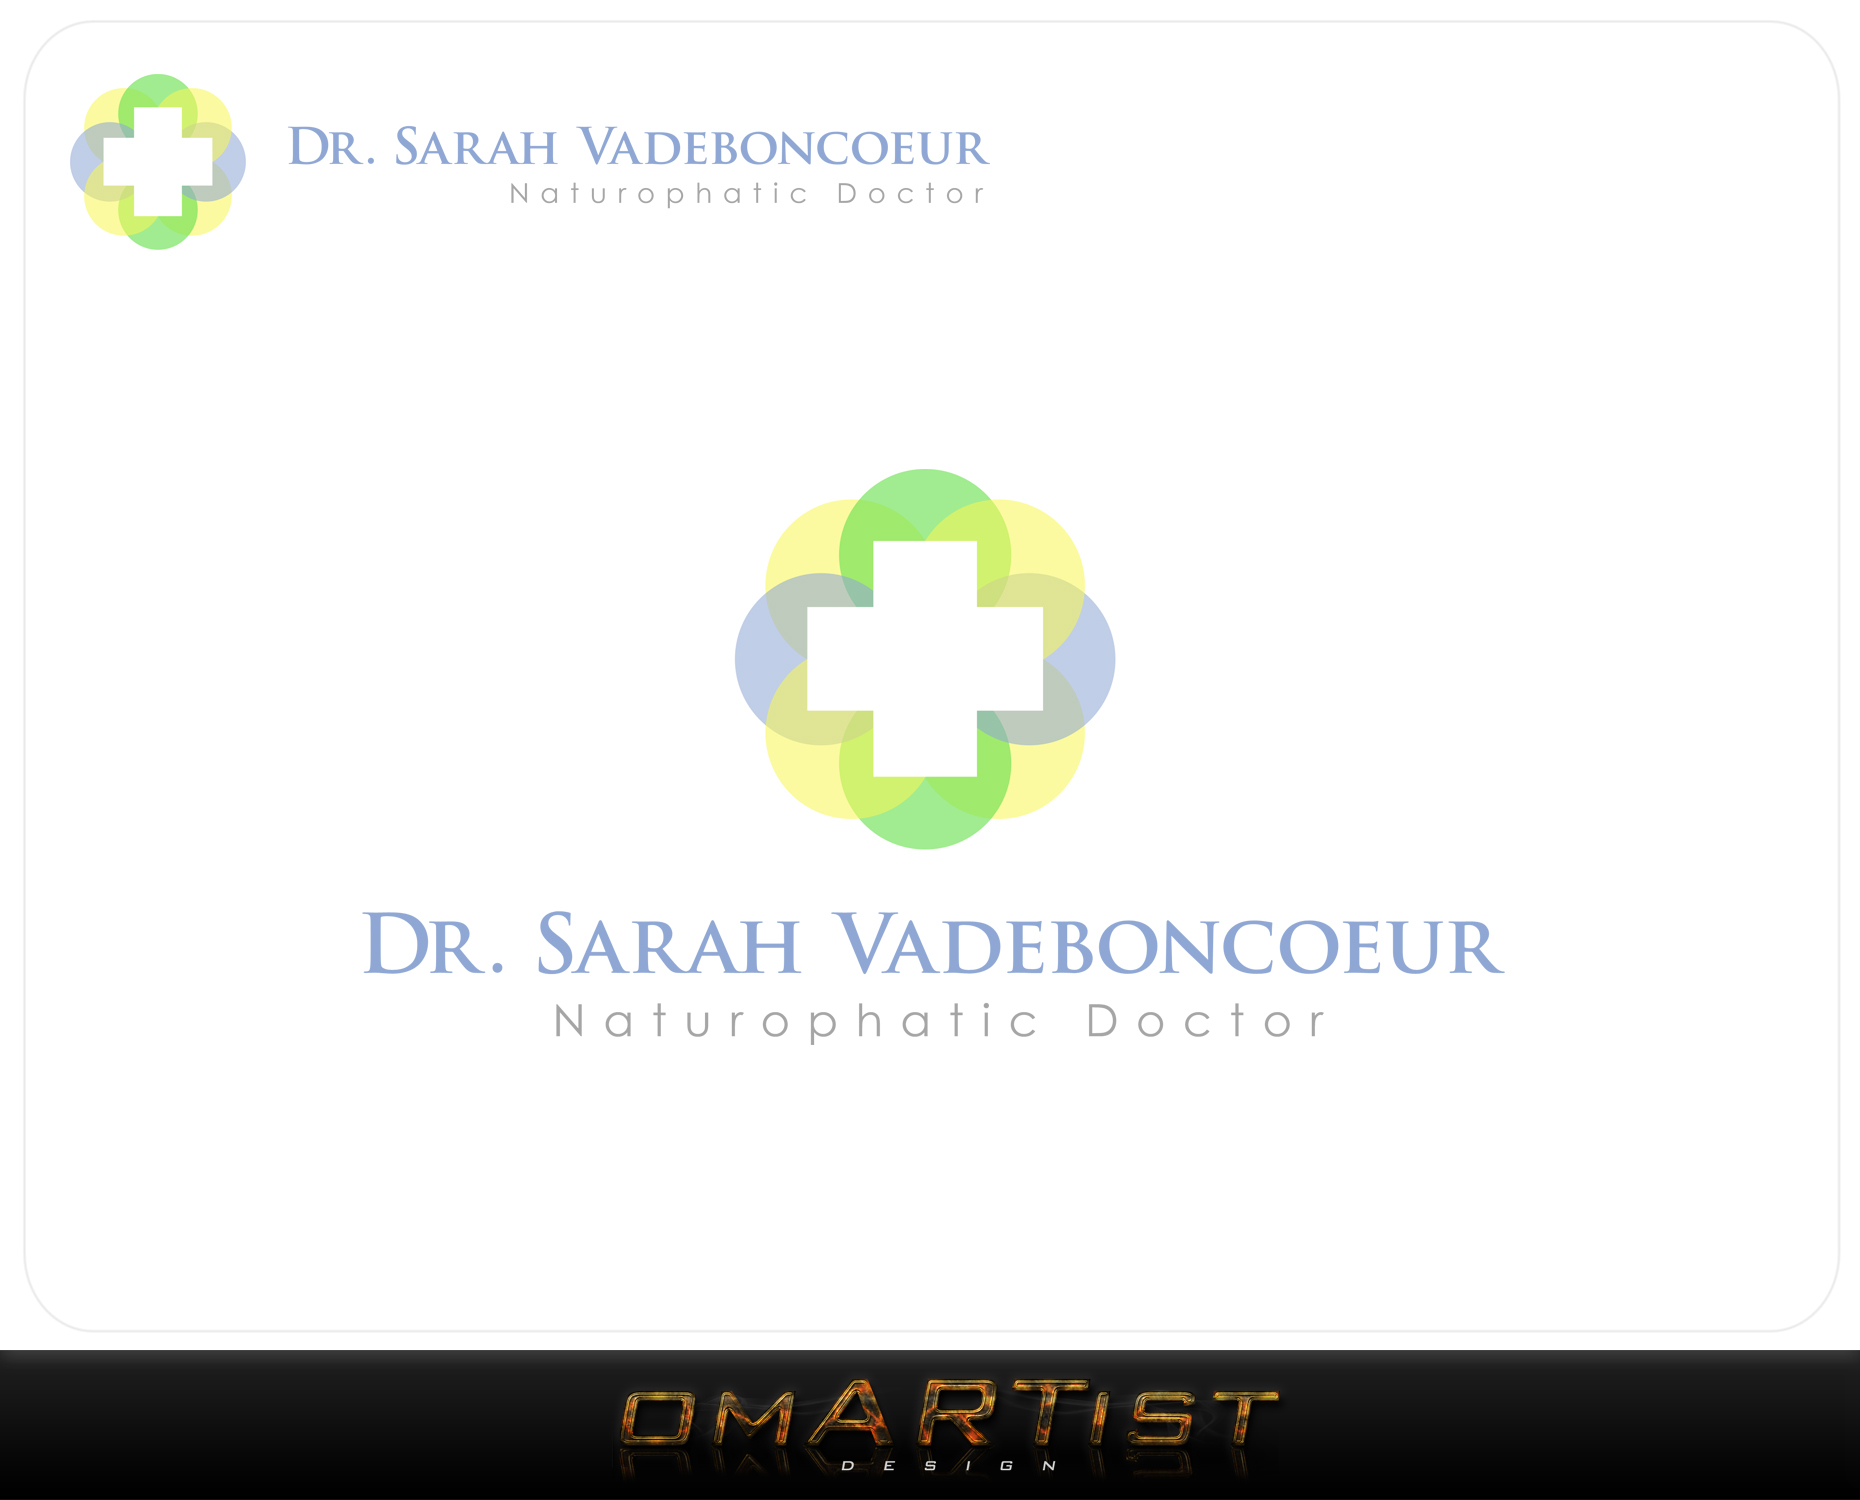 Logo Design by omARTist - Entry No. 19 in the Logo Design Contest New Logo Design for Dr. Sarah Vadeboncoeur, Naturopathic Doctor.